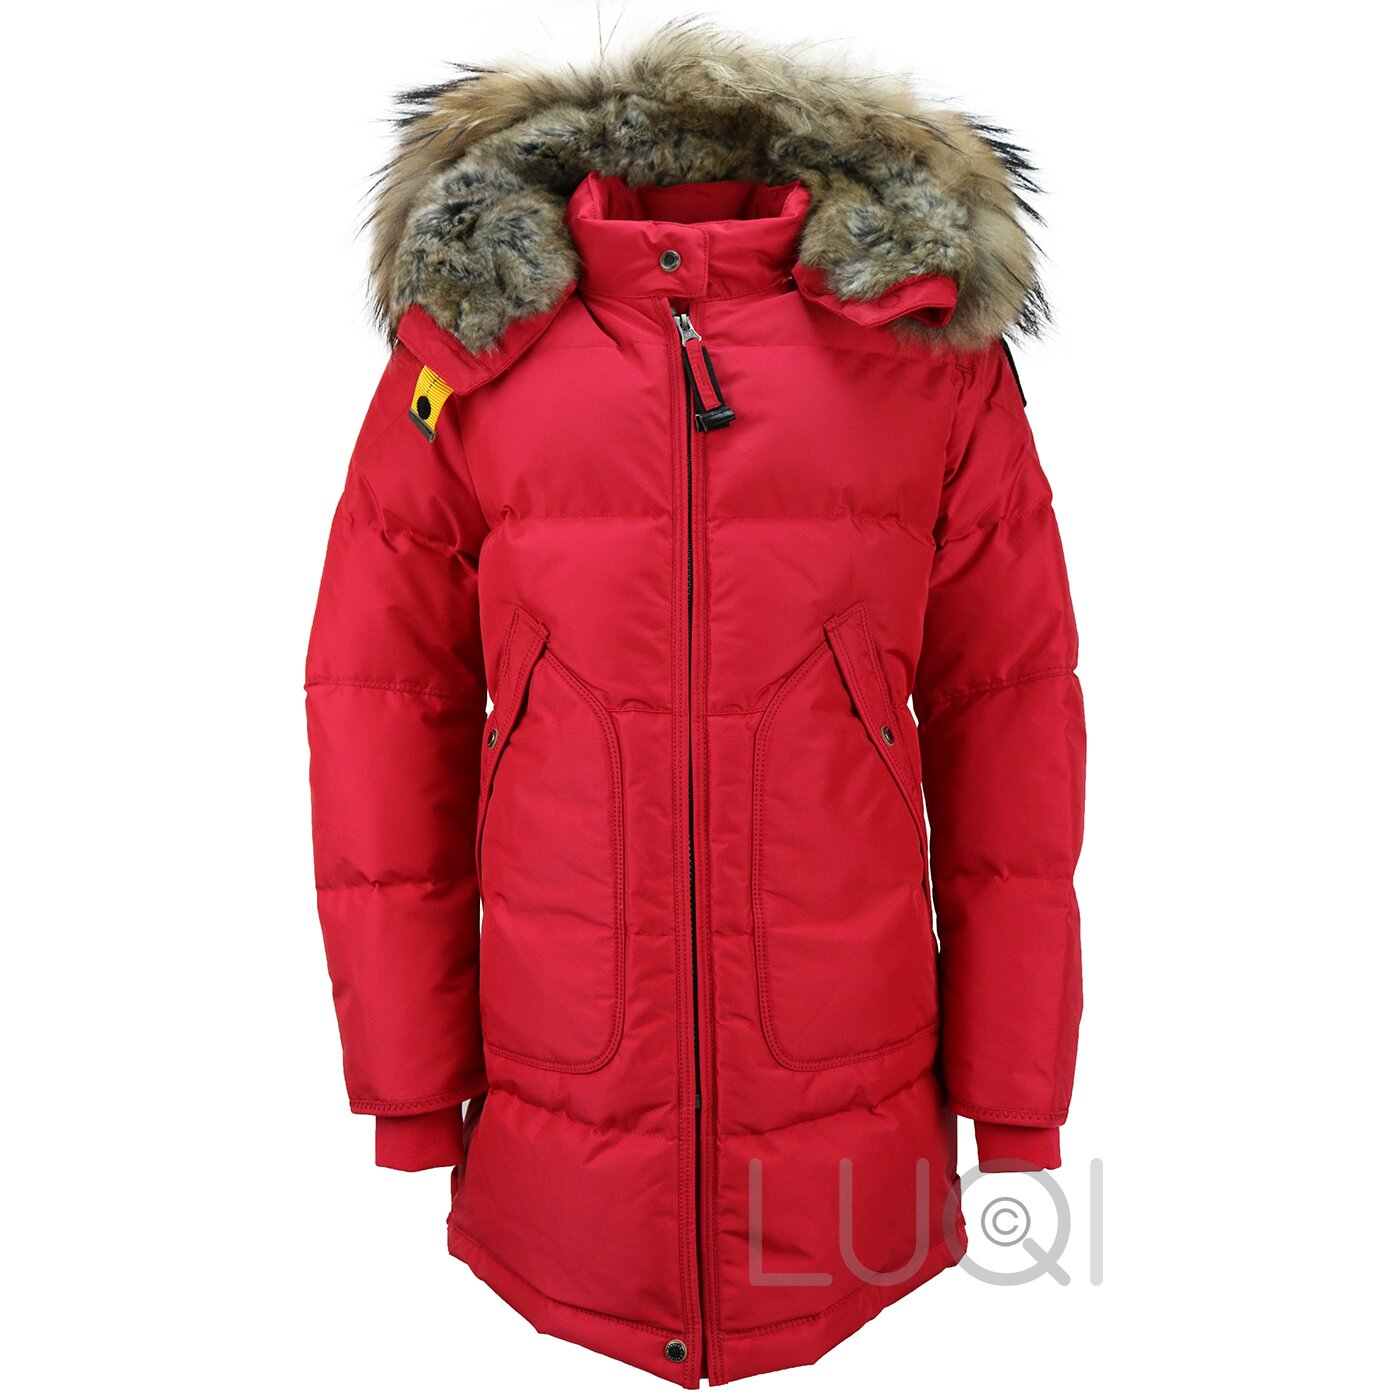 Parajumpers Effie Zwart PGJCKMA88 541 Fashion for Kids & Teens